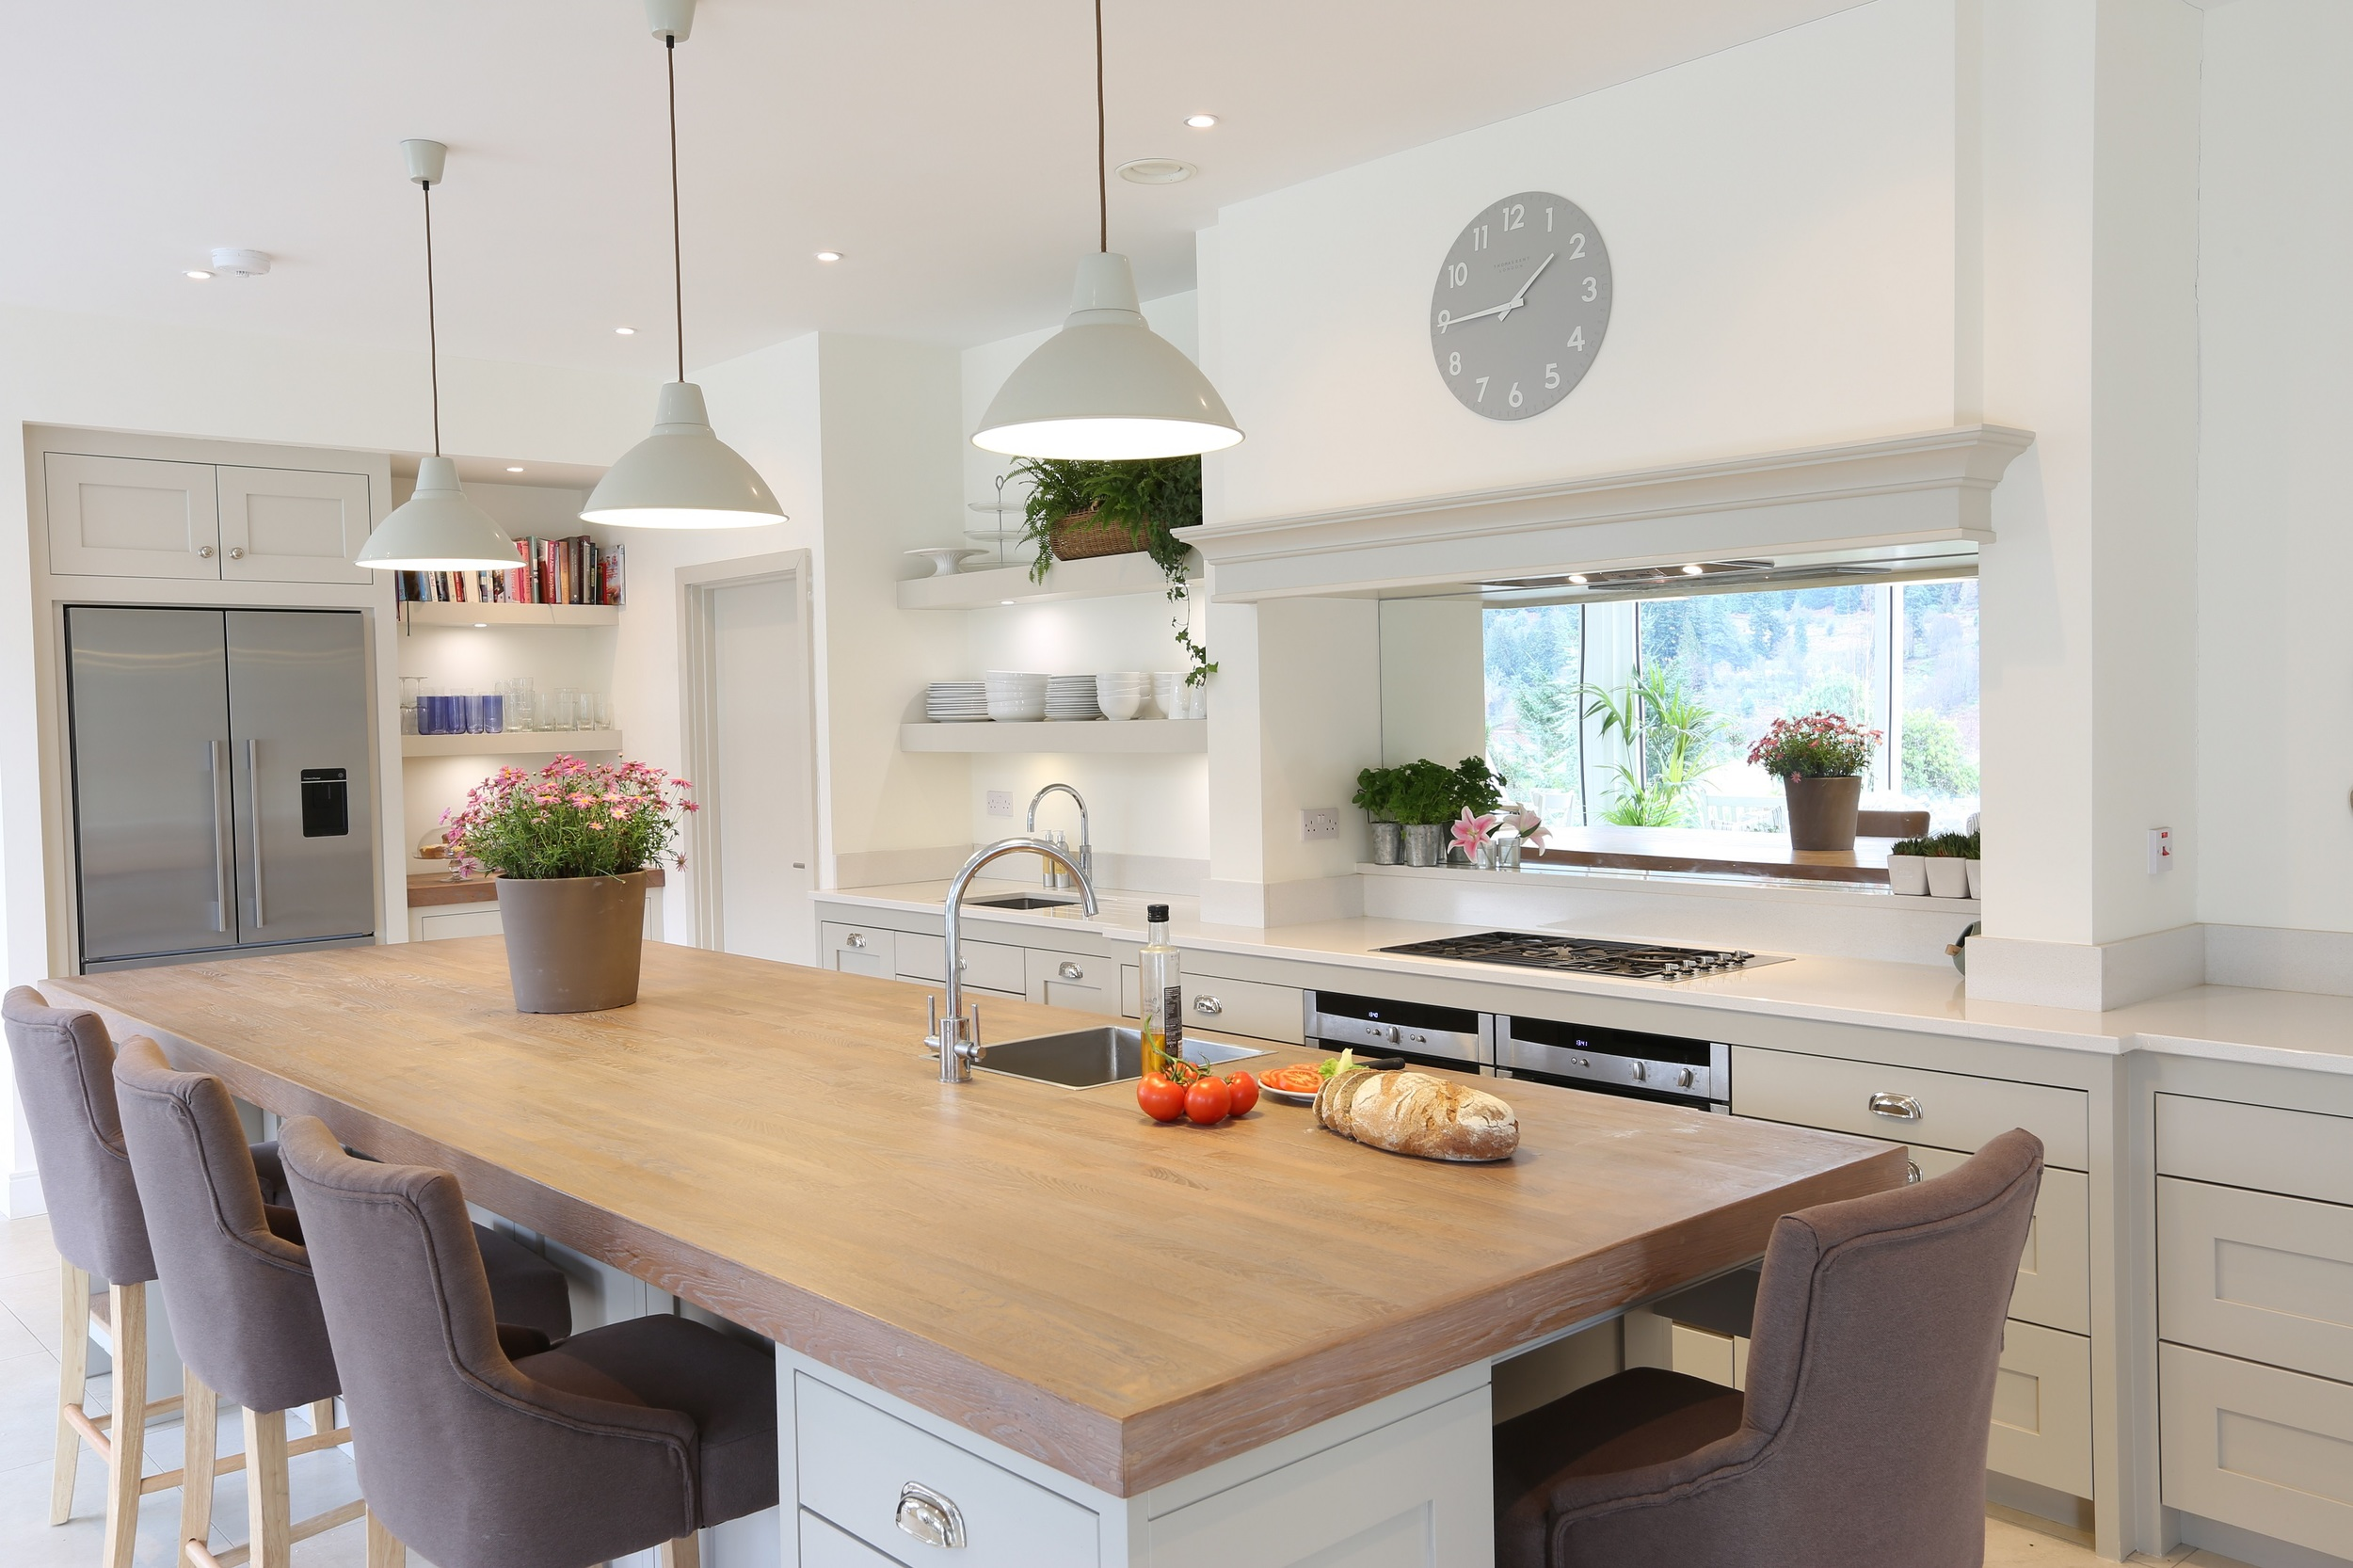 Hand painted kitchen by Noel Dempsey